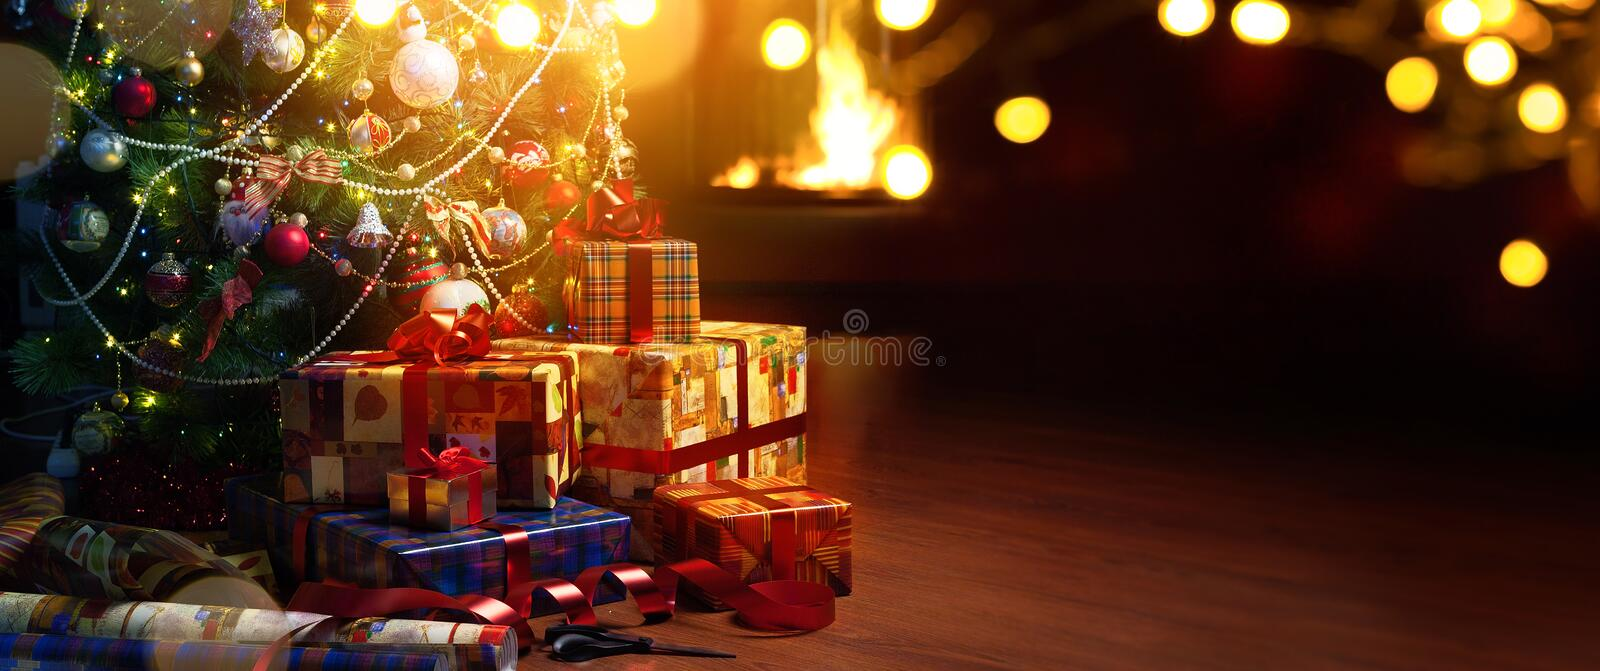 Art Christmas tree and holidays present on fireplace background royalty free stock photo